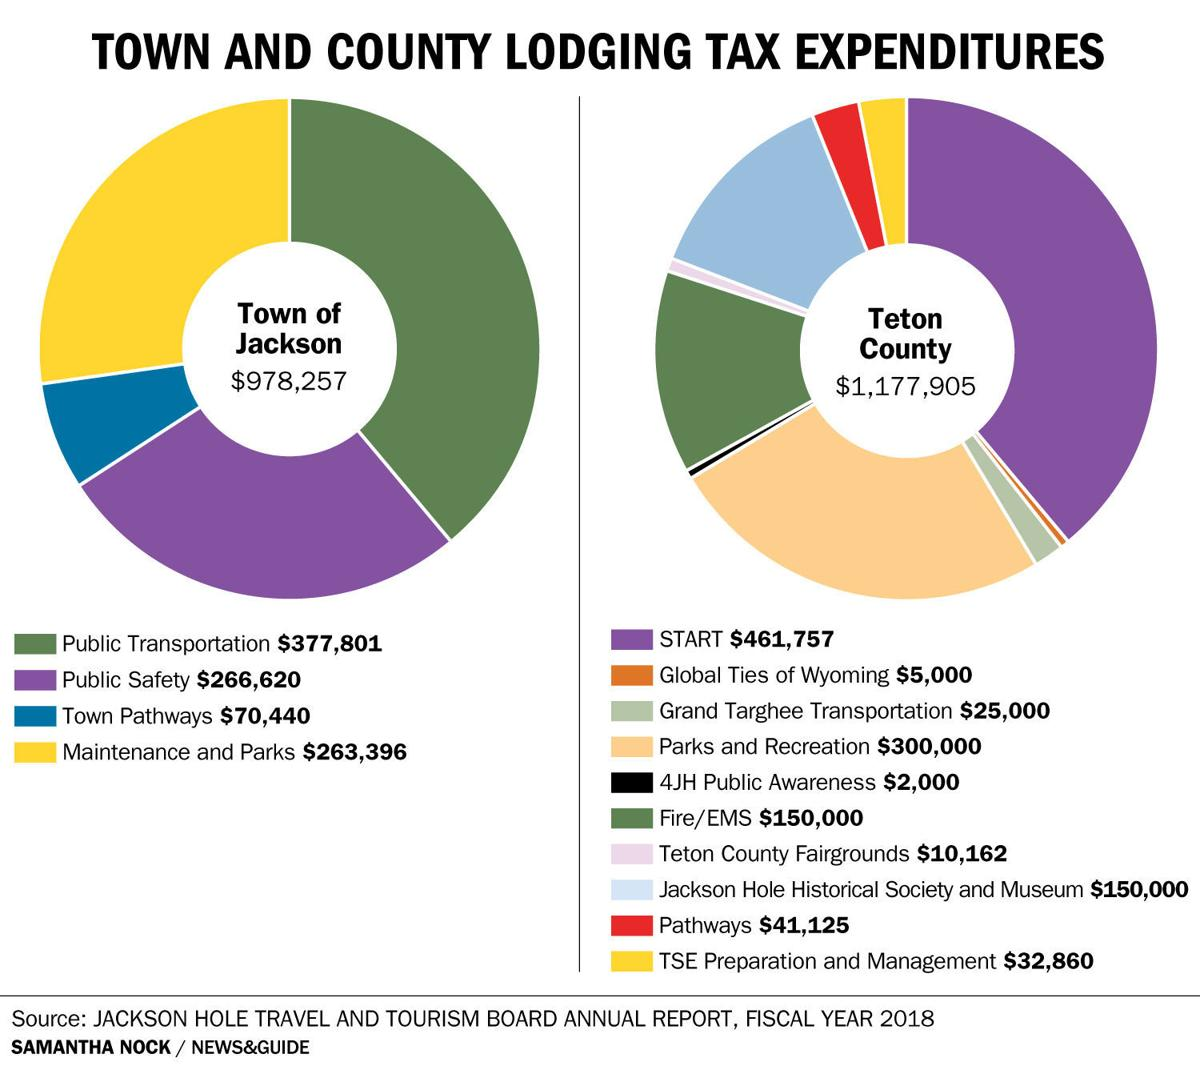 Town and County Lodging Tax